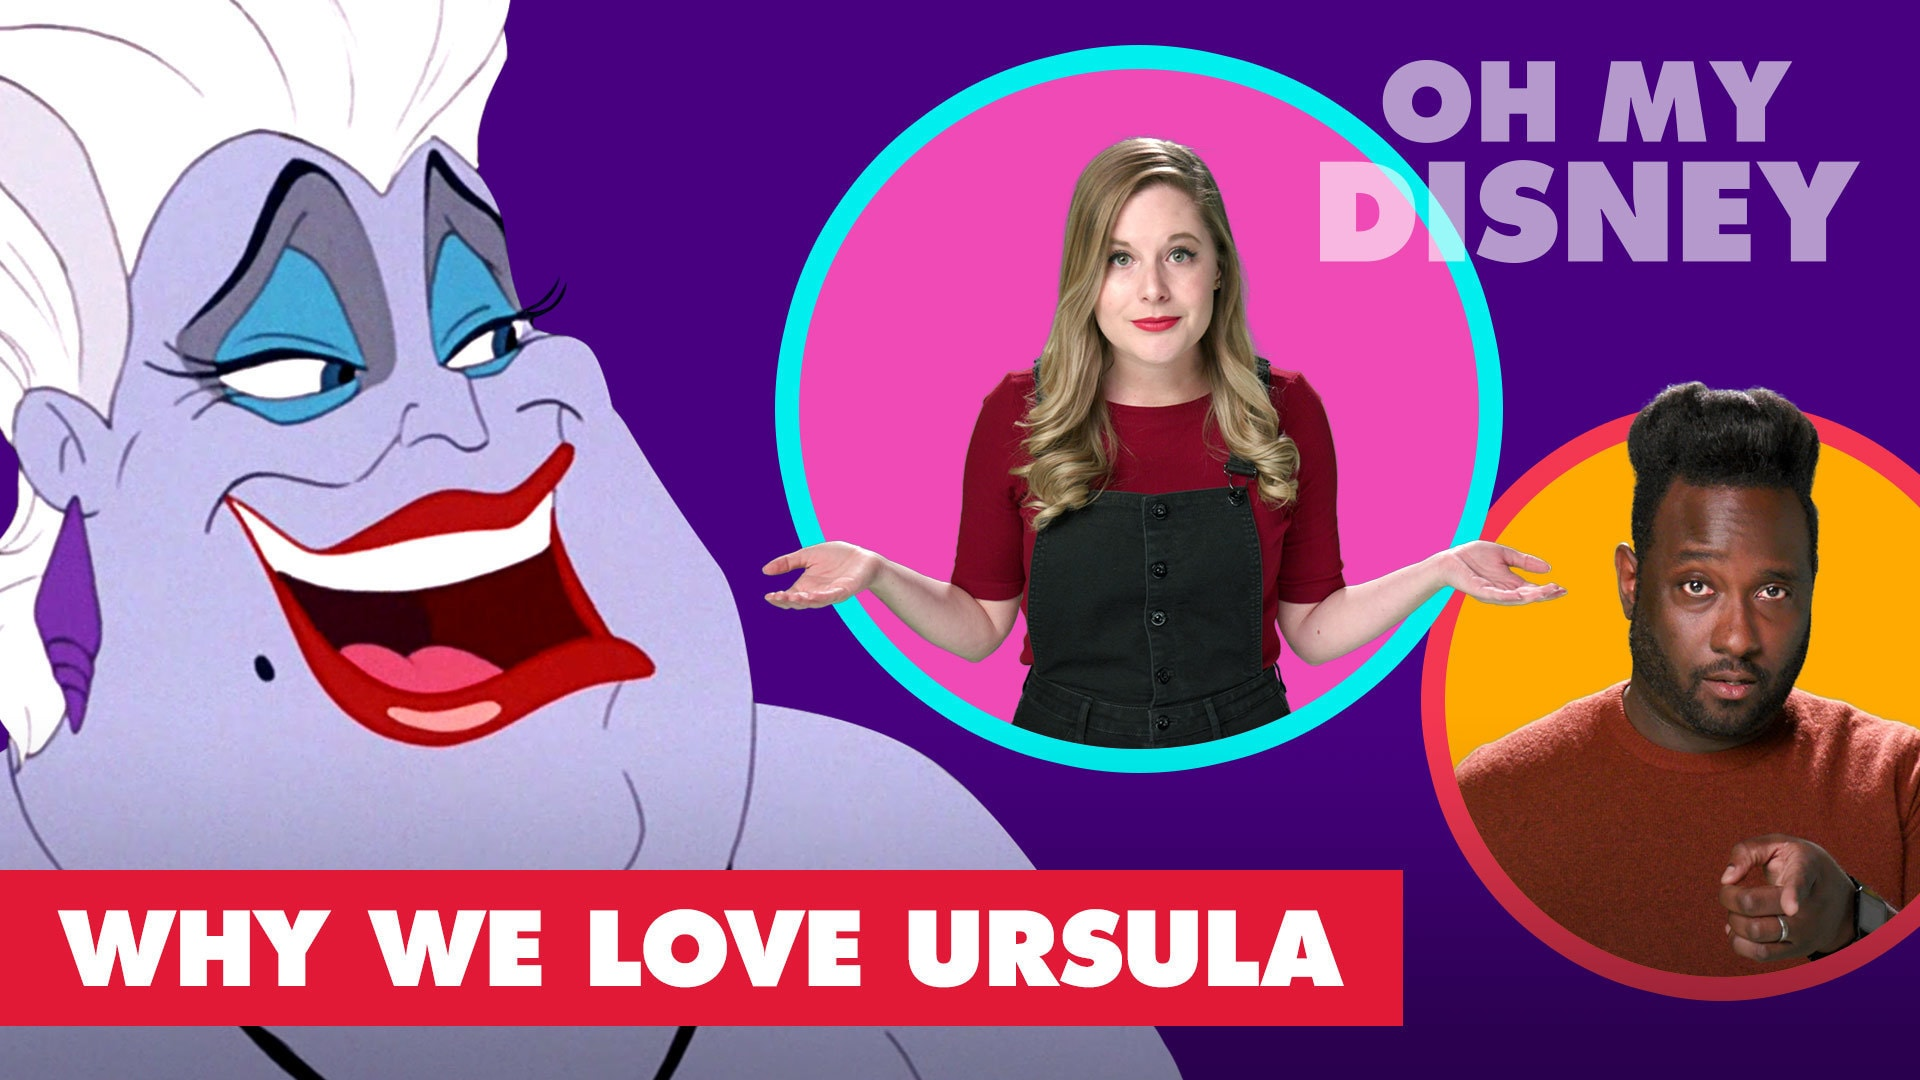 Why We Love Ursula from The Little Mermaid | Let's Talk Disney by Oh My Disney